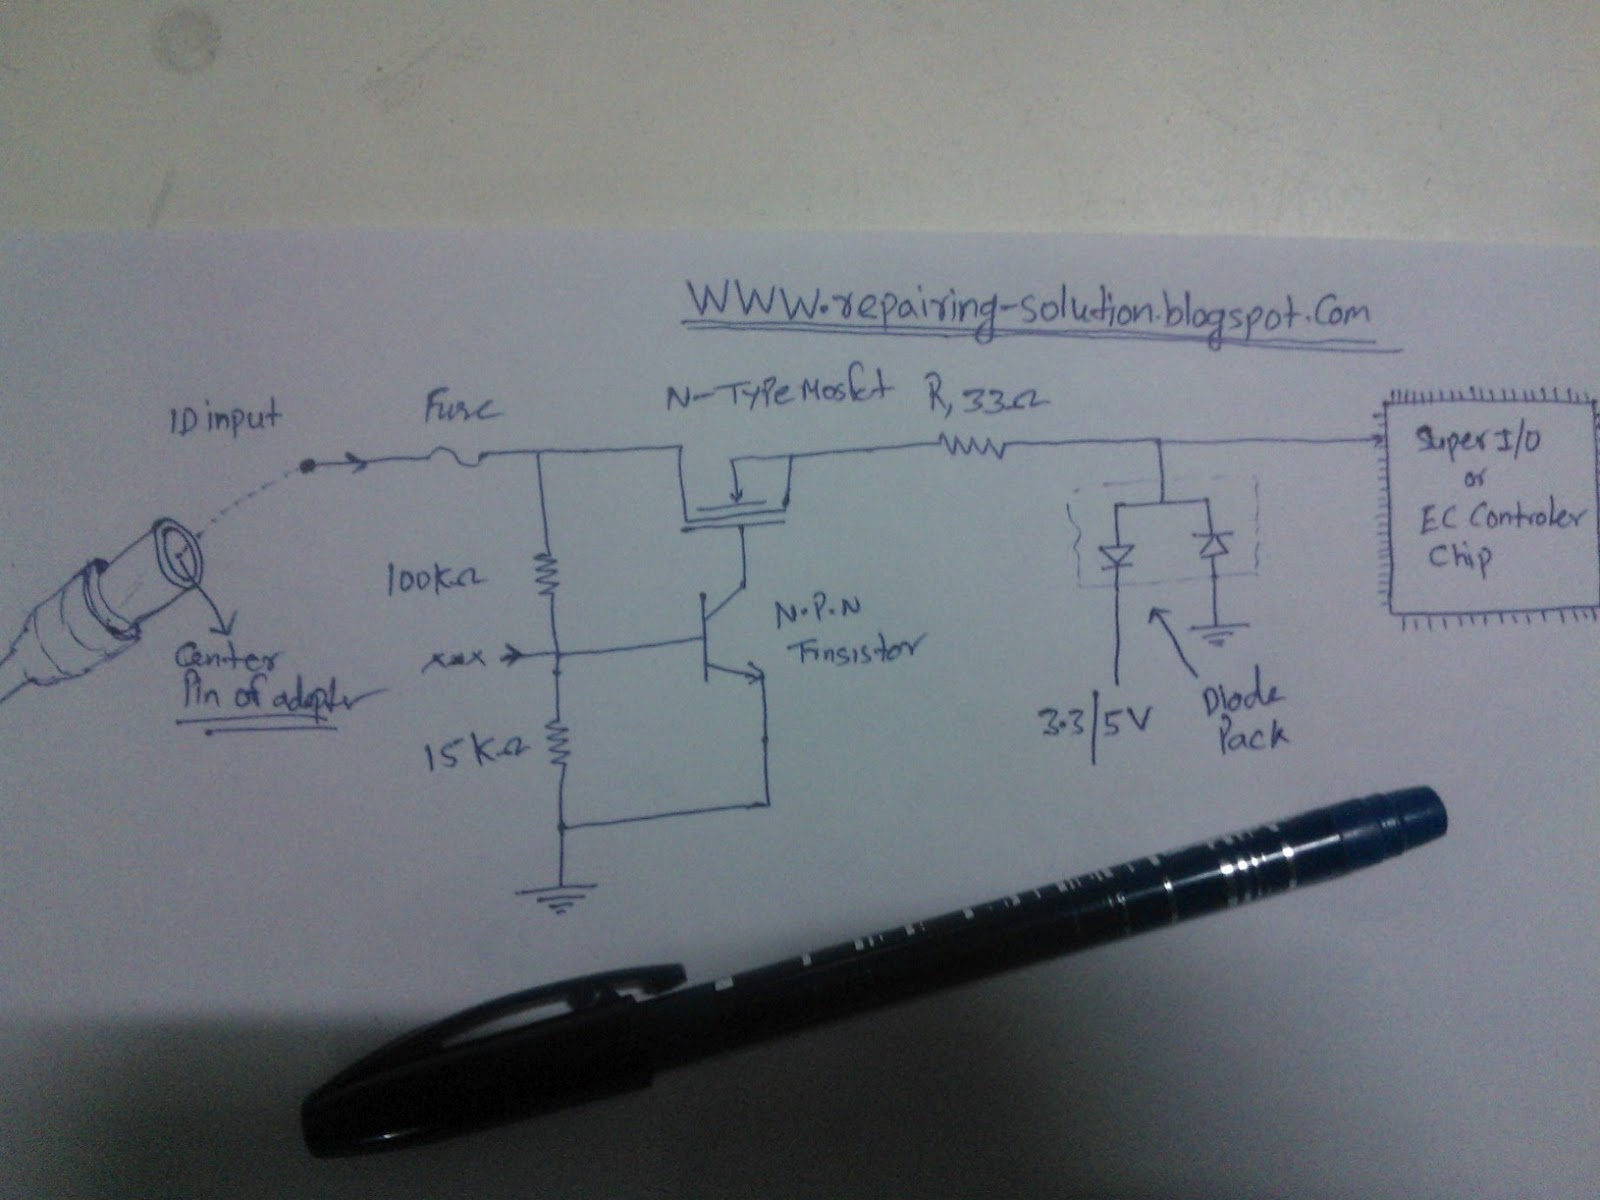 Dell Wiring Diagram Another Blog About Laptop Power Supply All Repairing Solution How To Fix If Not Rh Blogspot Com Nps 250kb